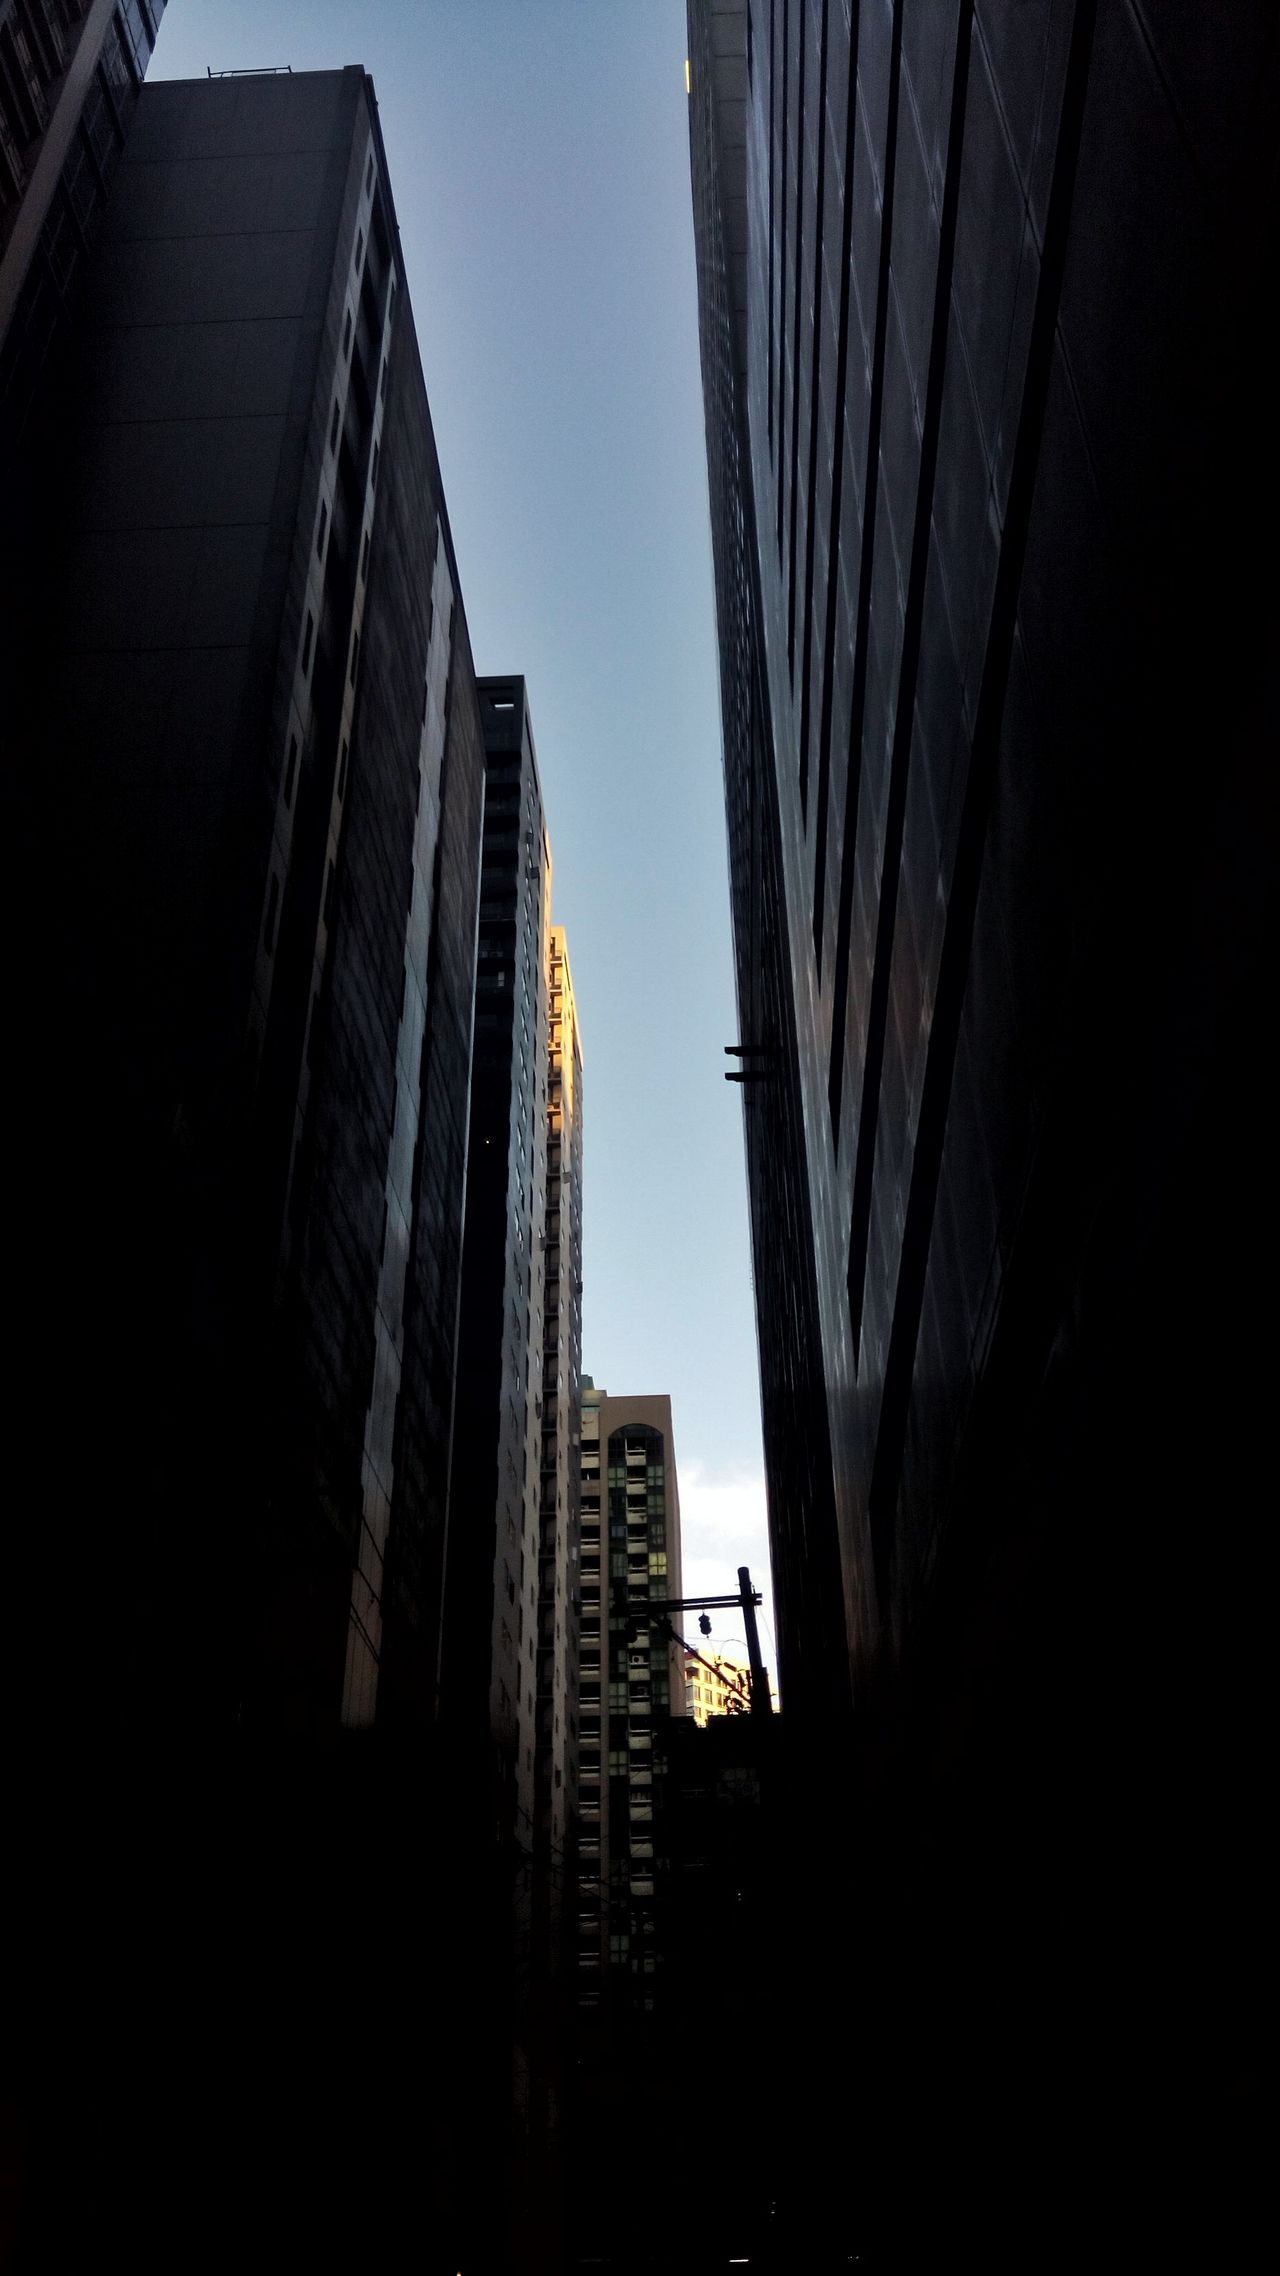 Architecture City Building Exterior Futuristic Skyscraper Outdoors Built Structure Low Angle View Sky No People Night Buildings & Sky Buildingstyles